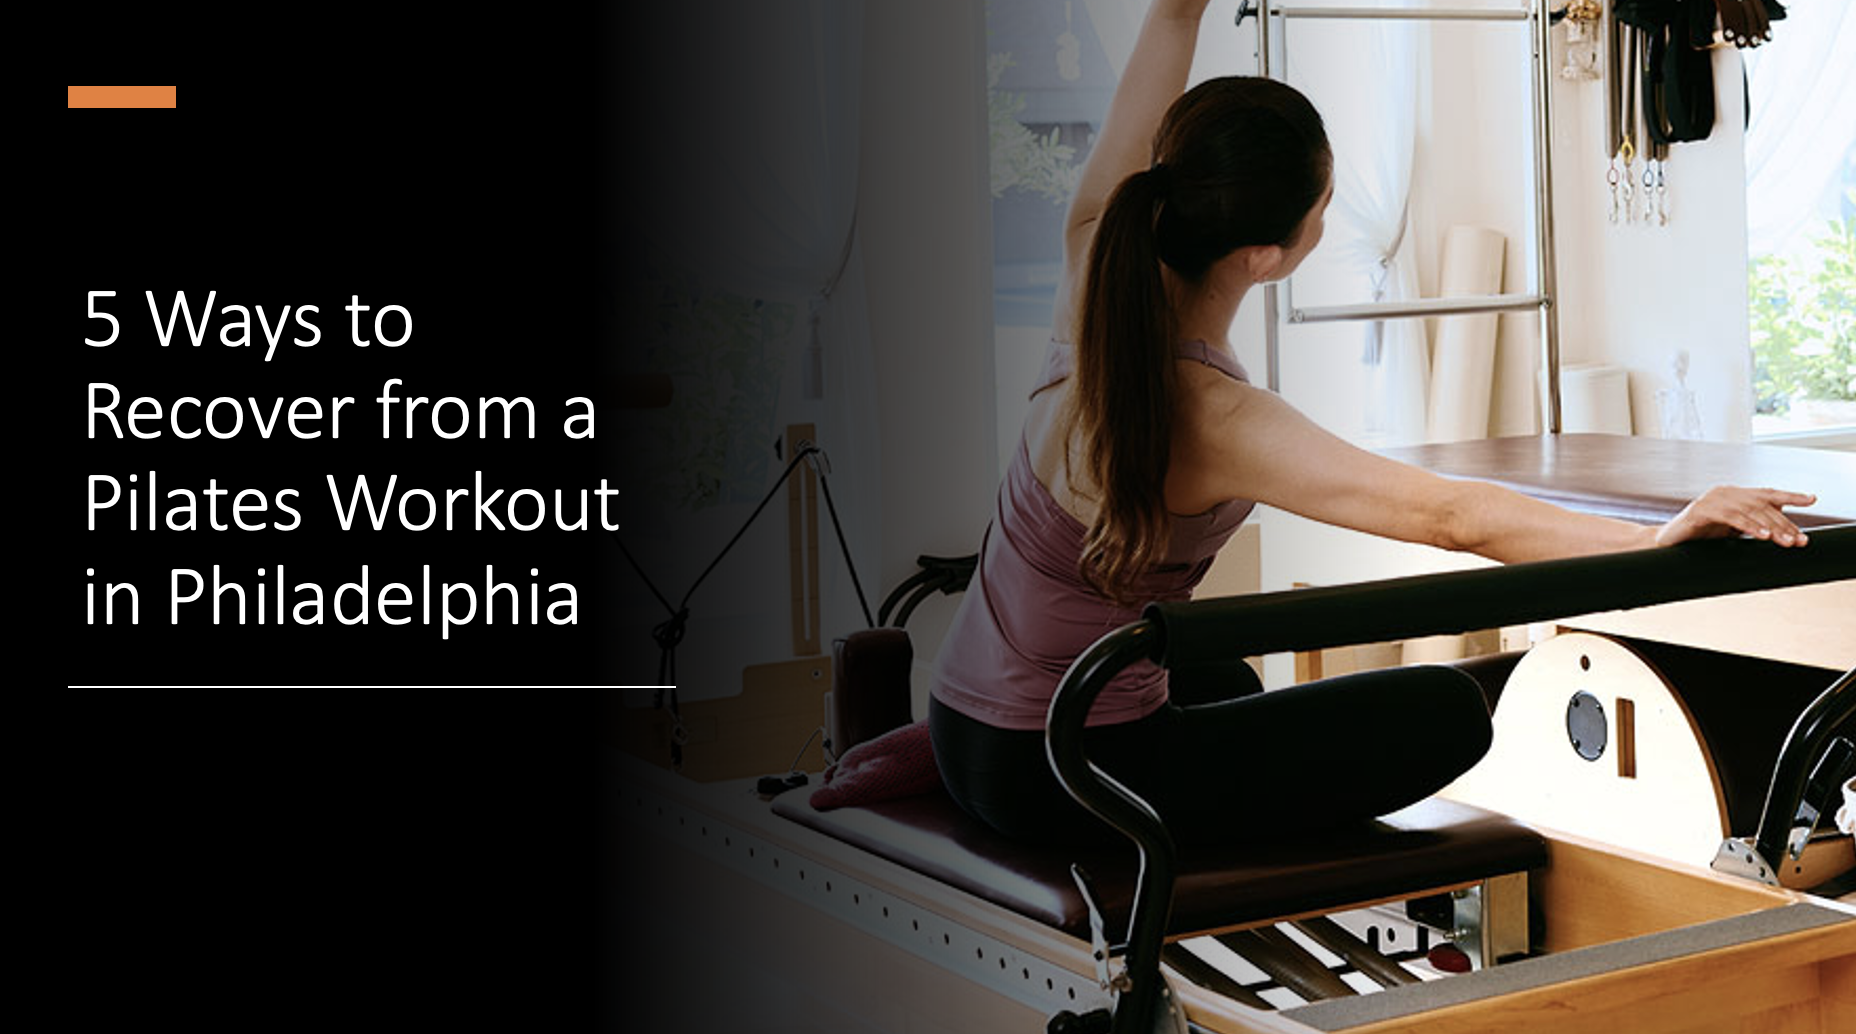 Pilates Workout Recovery in Philadelphia